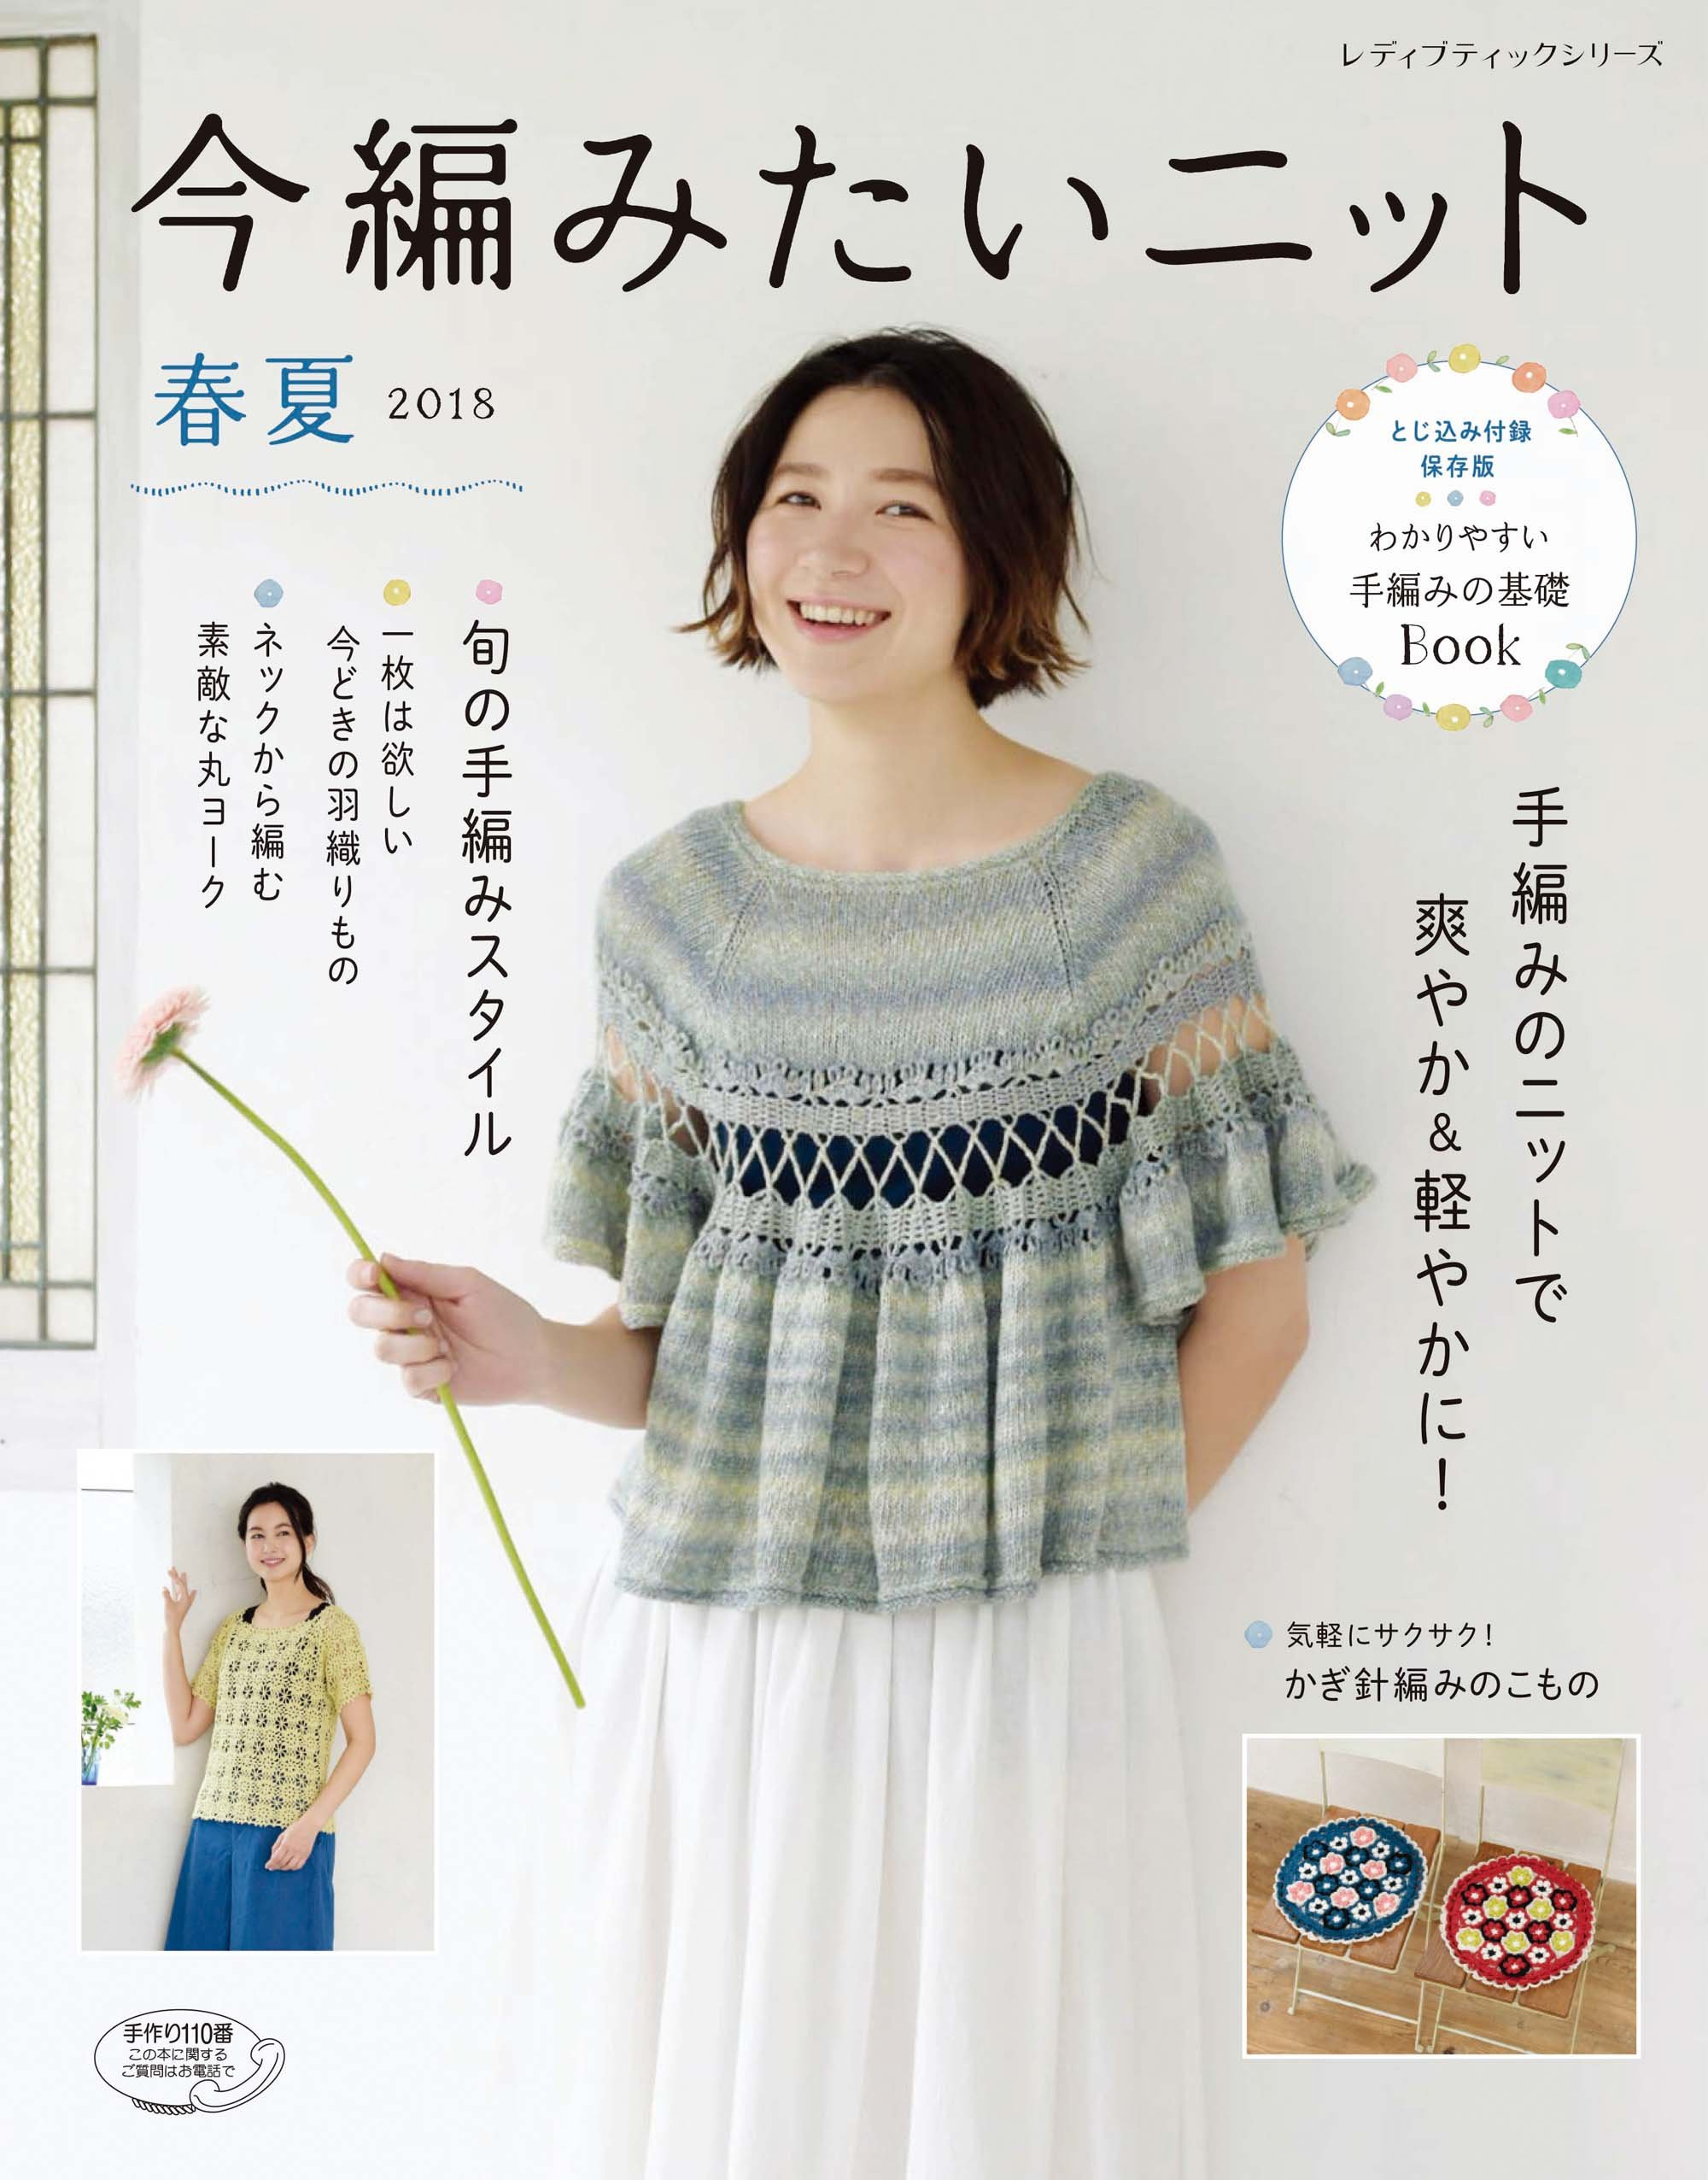 I want to knit now 2018 spring and summer